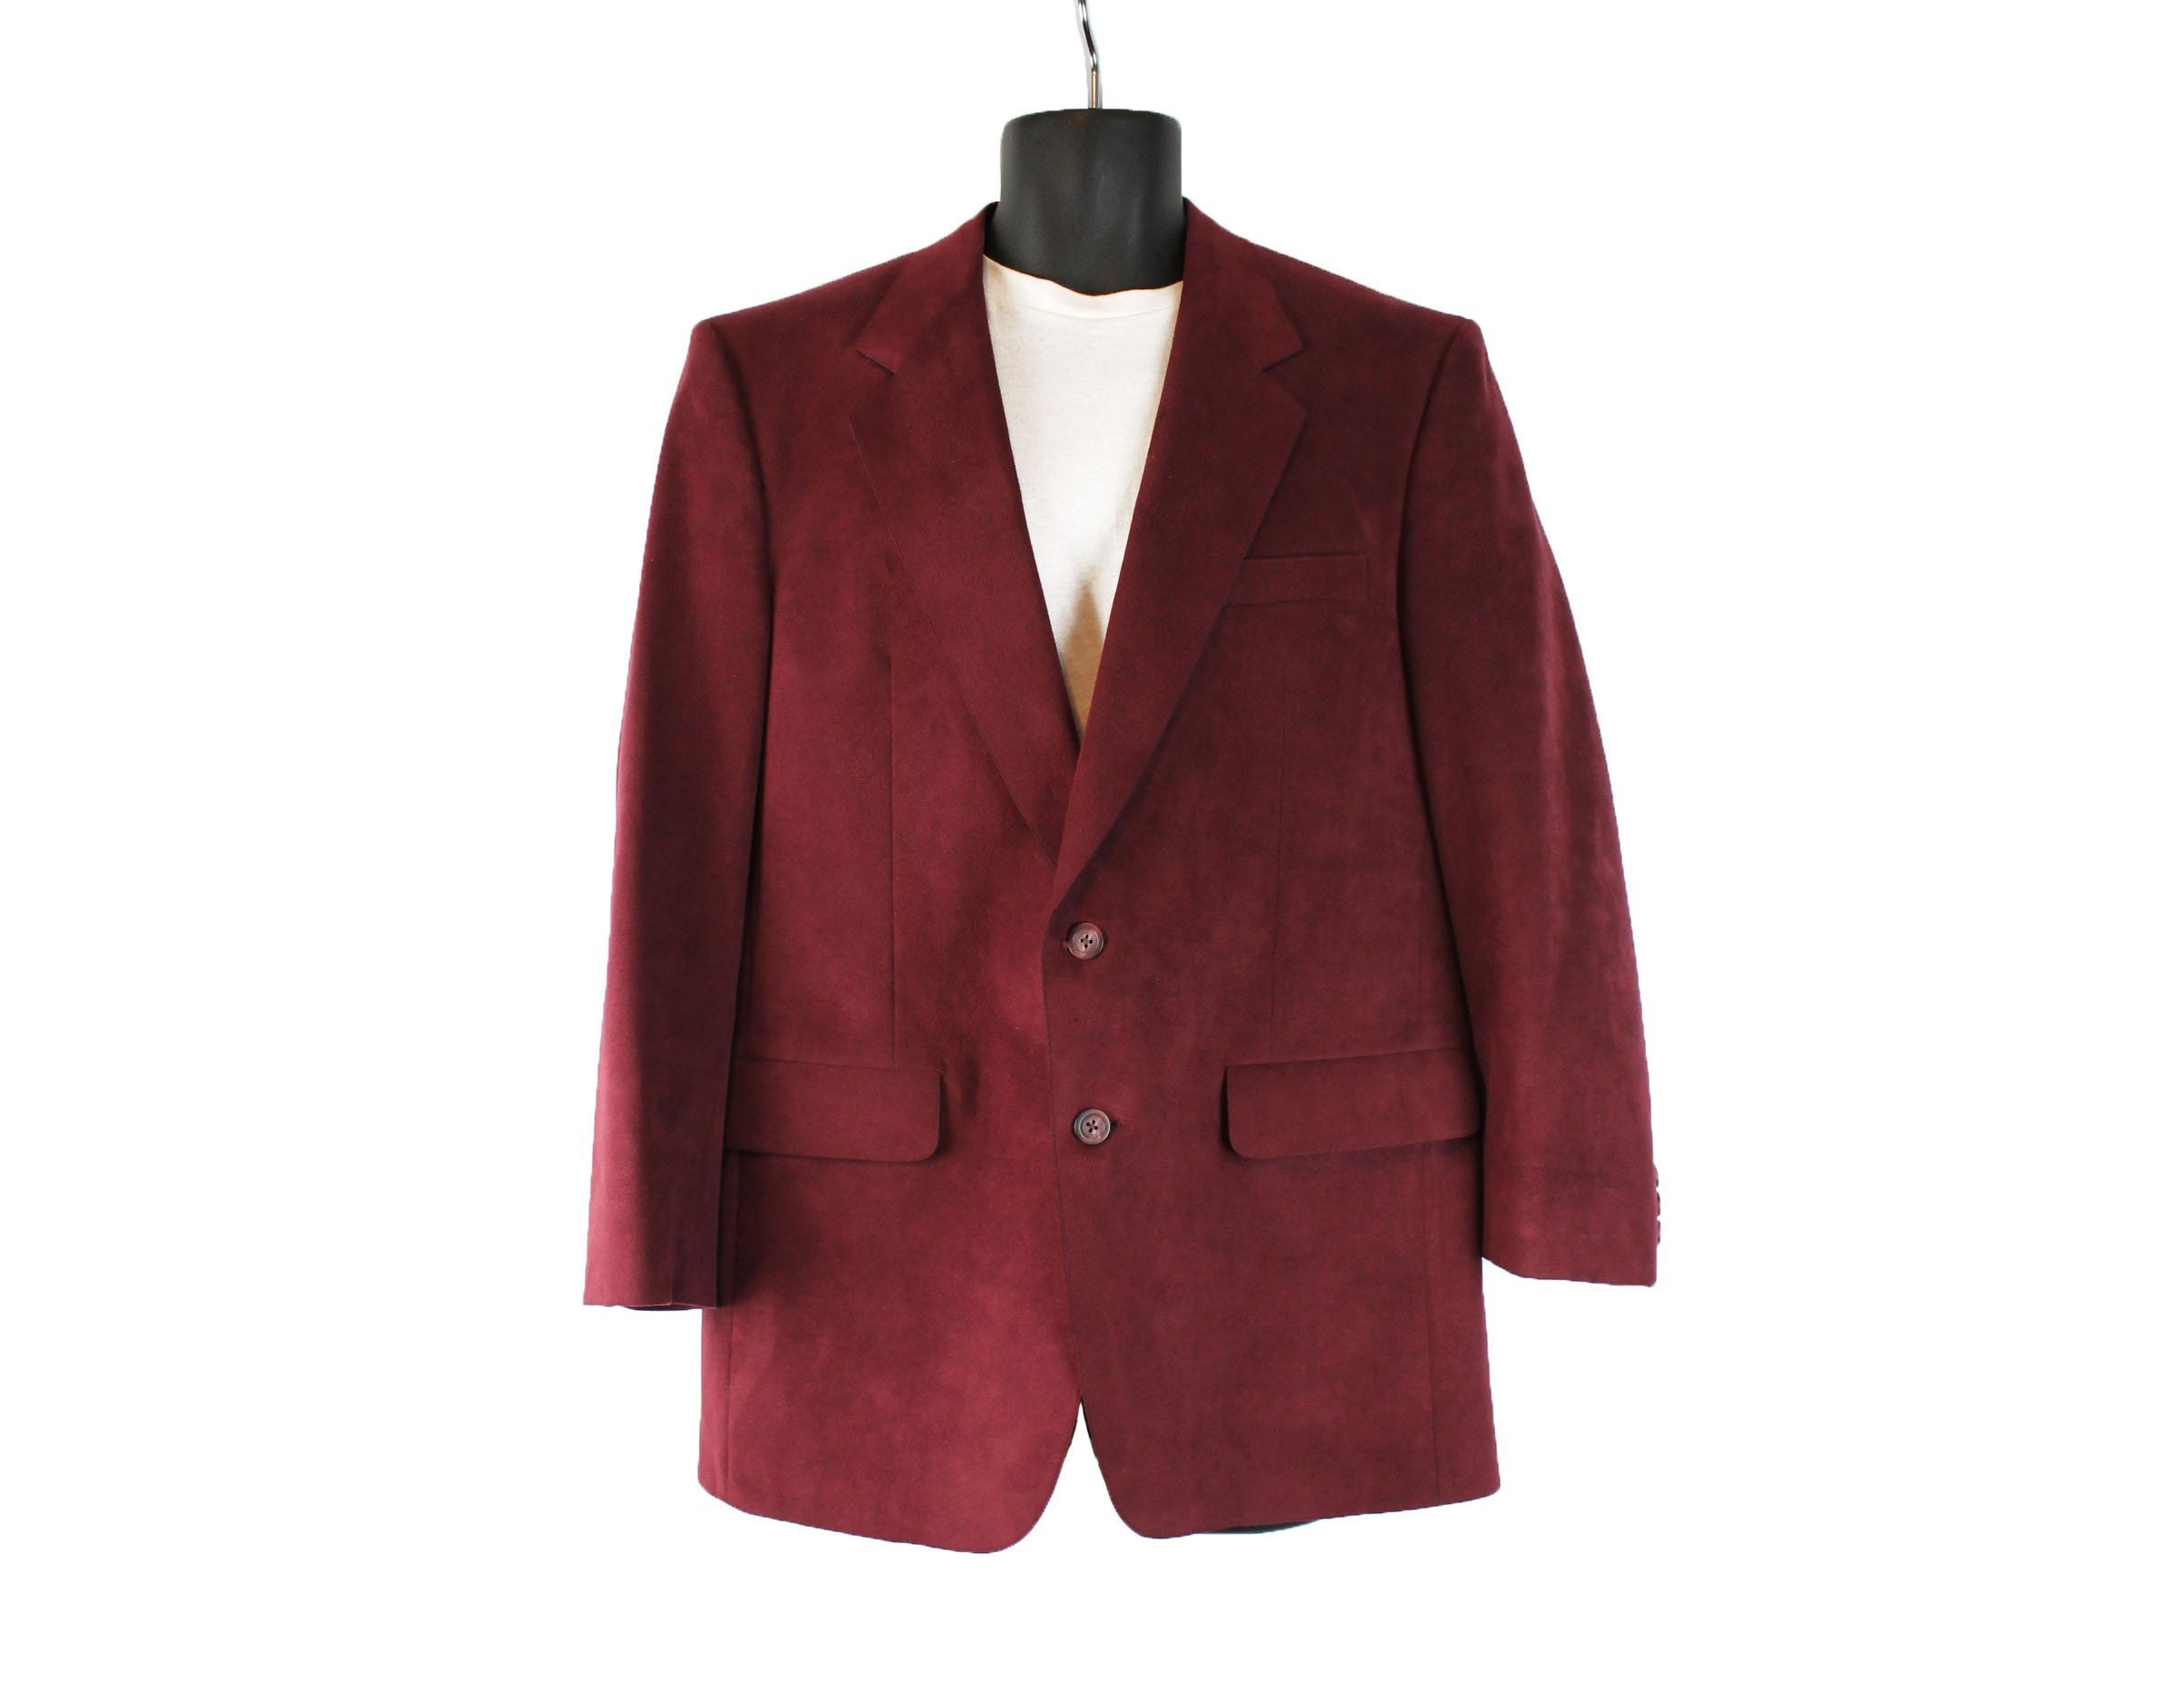 Vintage 70s Blazer 42s Dark Burgundy Wine Red Faux Suede Jacket Coat Kingsridge Free Us Shipping By Hepcatclothes On Et Faux Suede Jacket Blazer Vintage Blazer